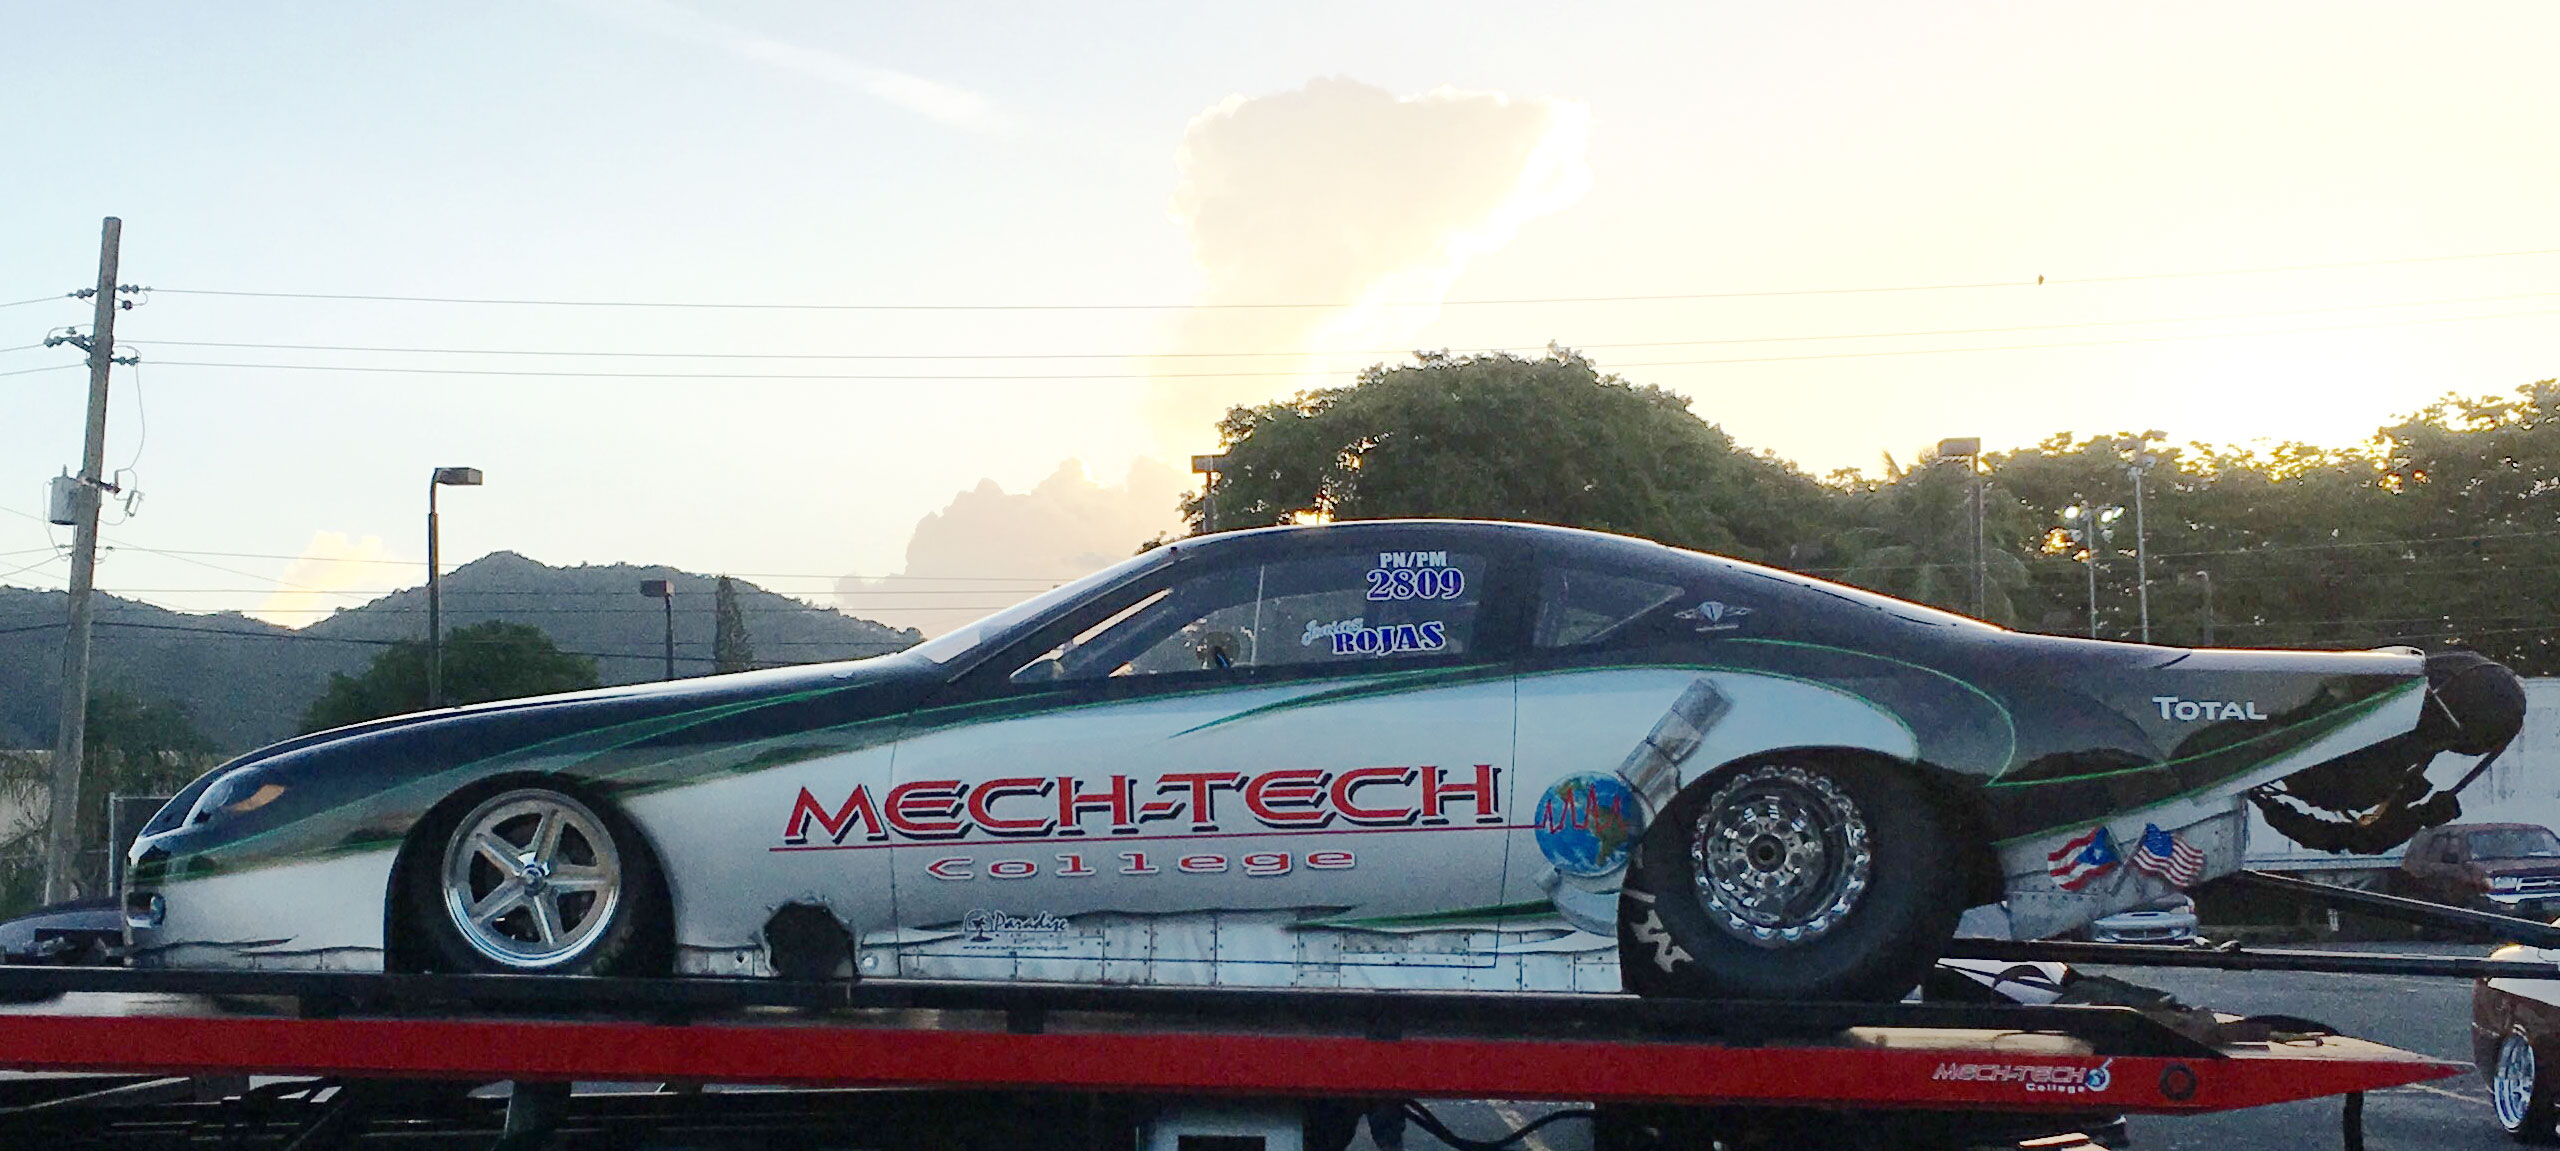 Mech-Tech Racing 2JZ Toyota Scion